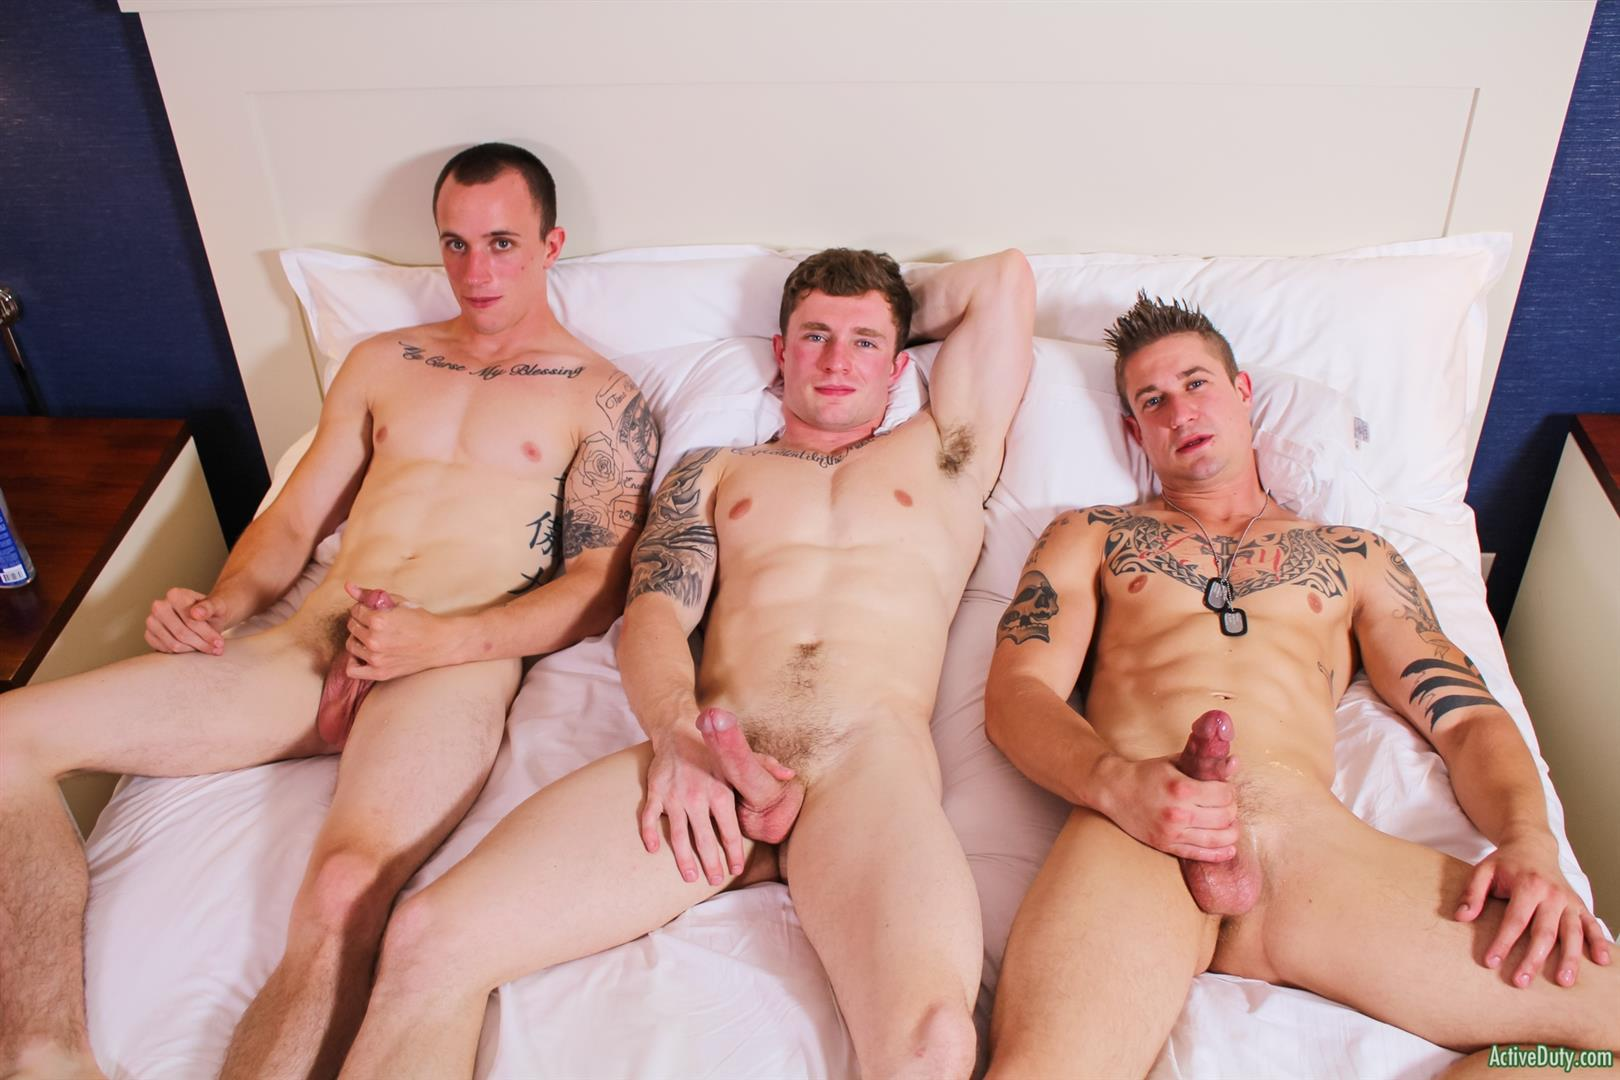 Active Duty Threeway Army Guys Bareback Sex Video Amateur Gay Porn 15 Big Dick Muscular Army Guys In A Bareback Threeway